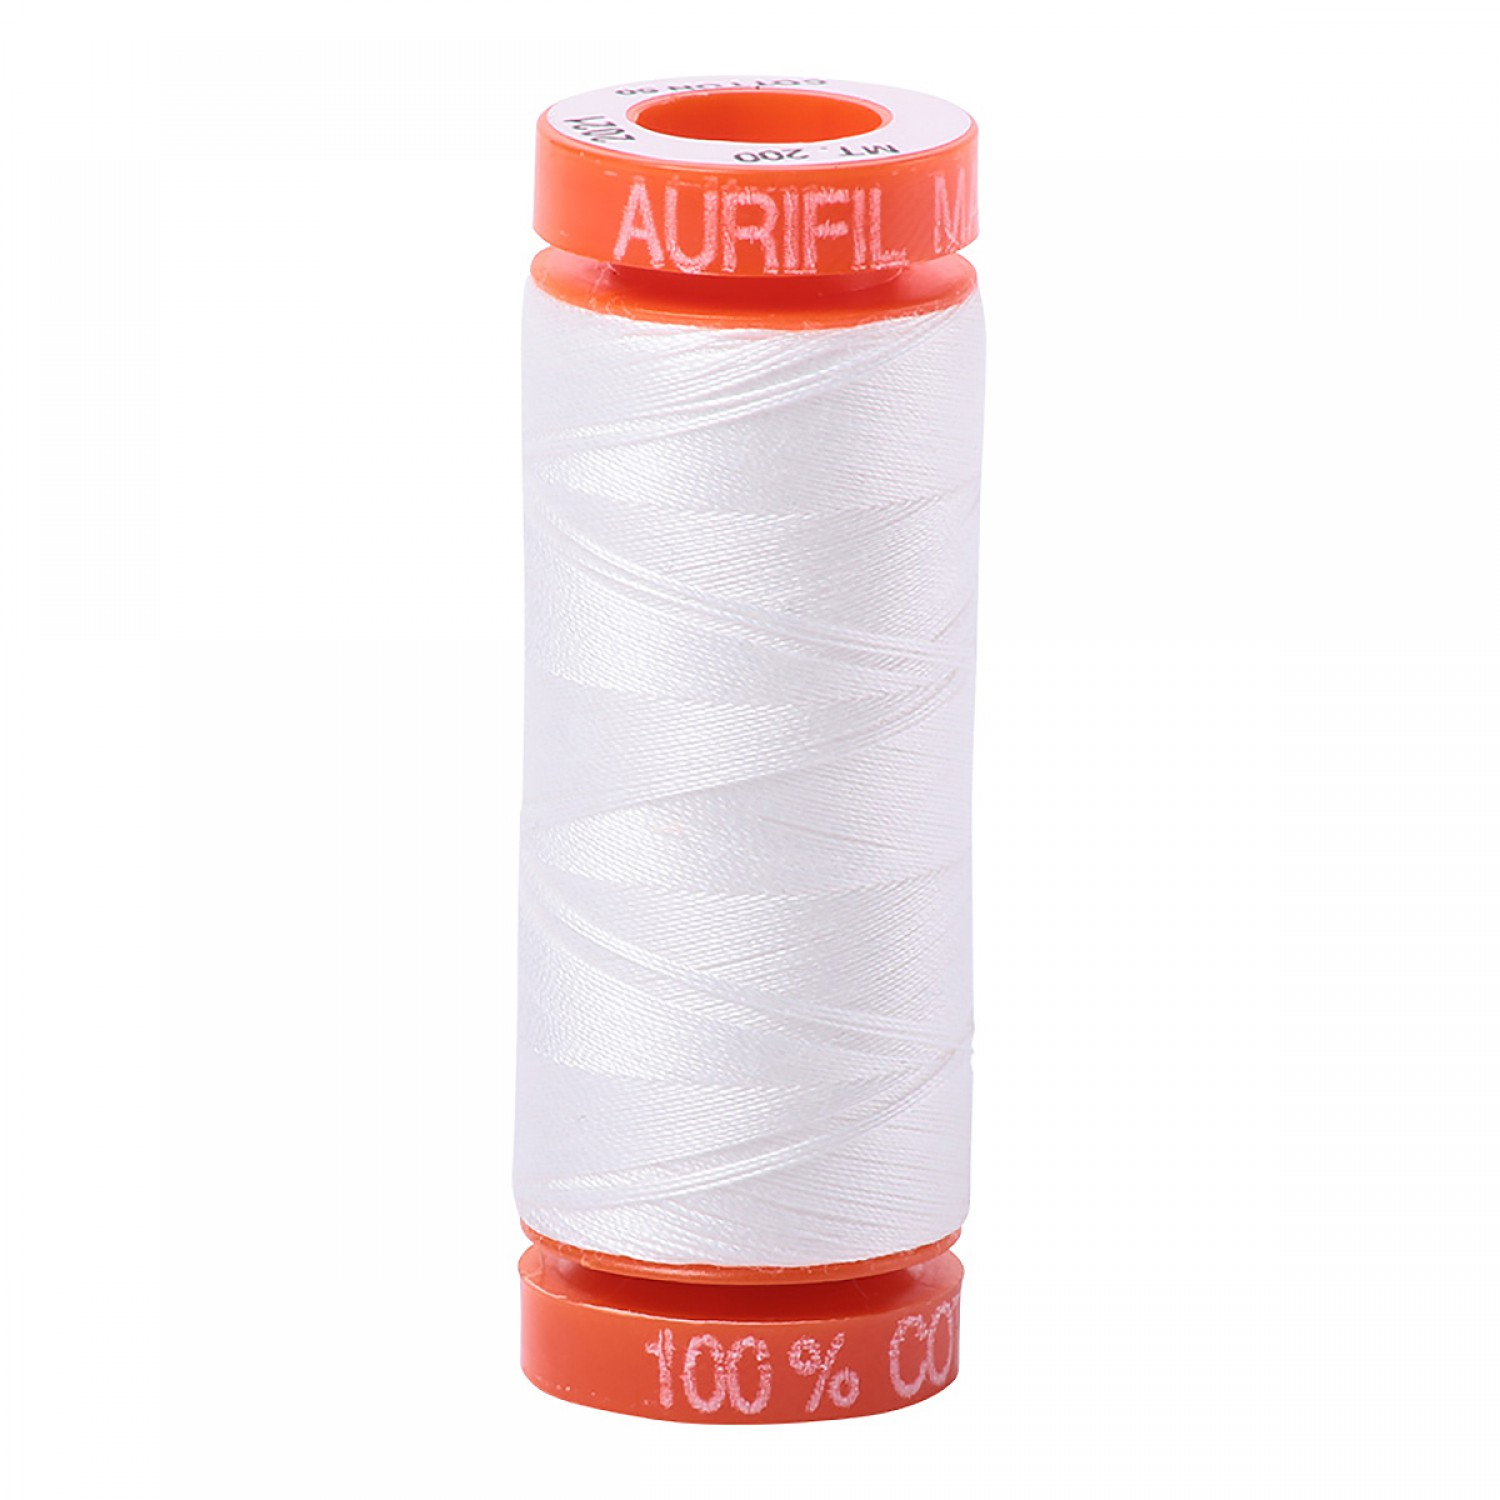 Aurifil Mako 50 wt Cotton Thread - 220 yds - Natural White (2021)